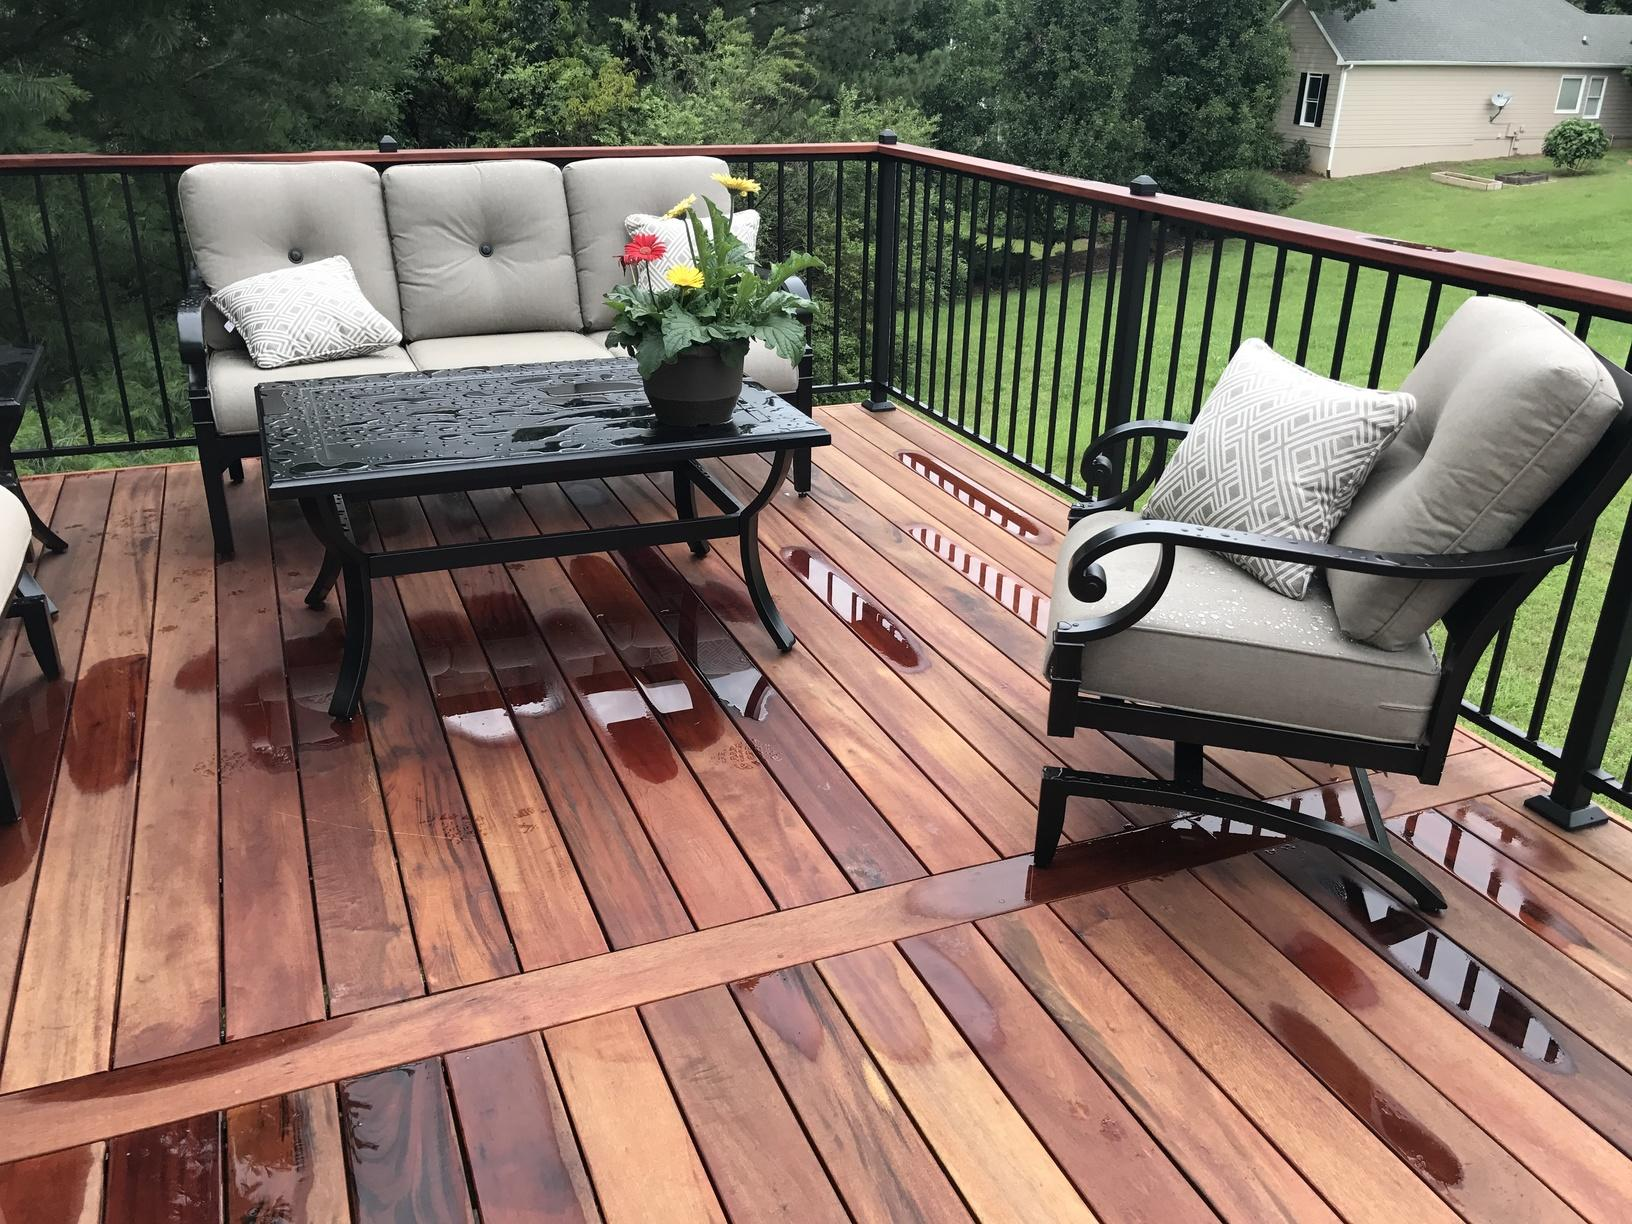 Deck Replacement in Cumming, GA - After Photo